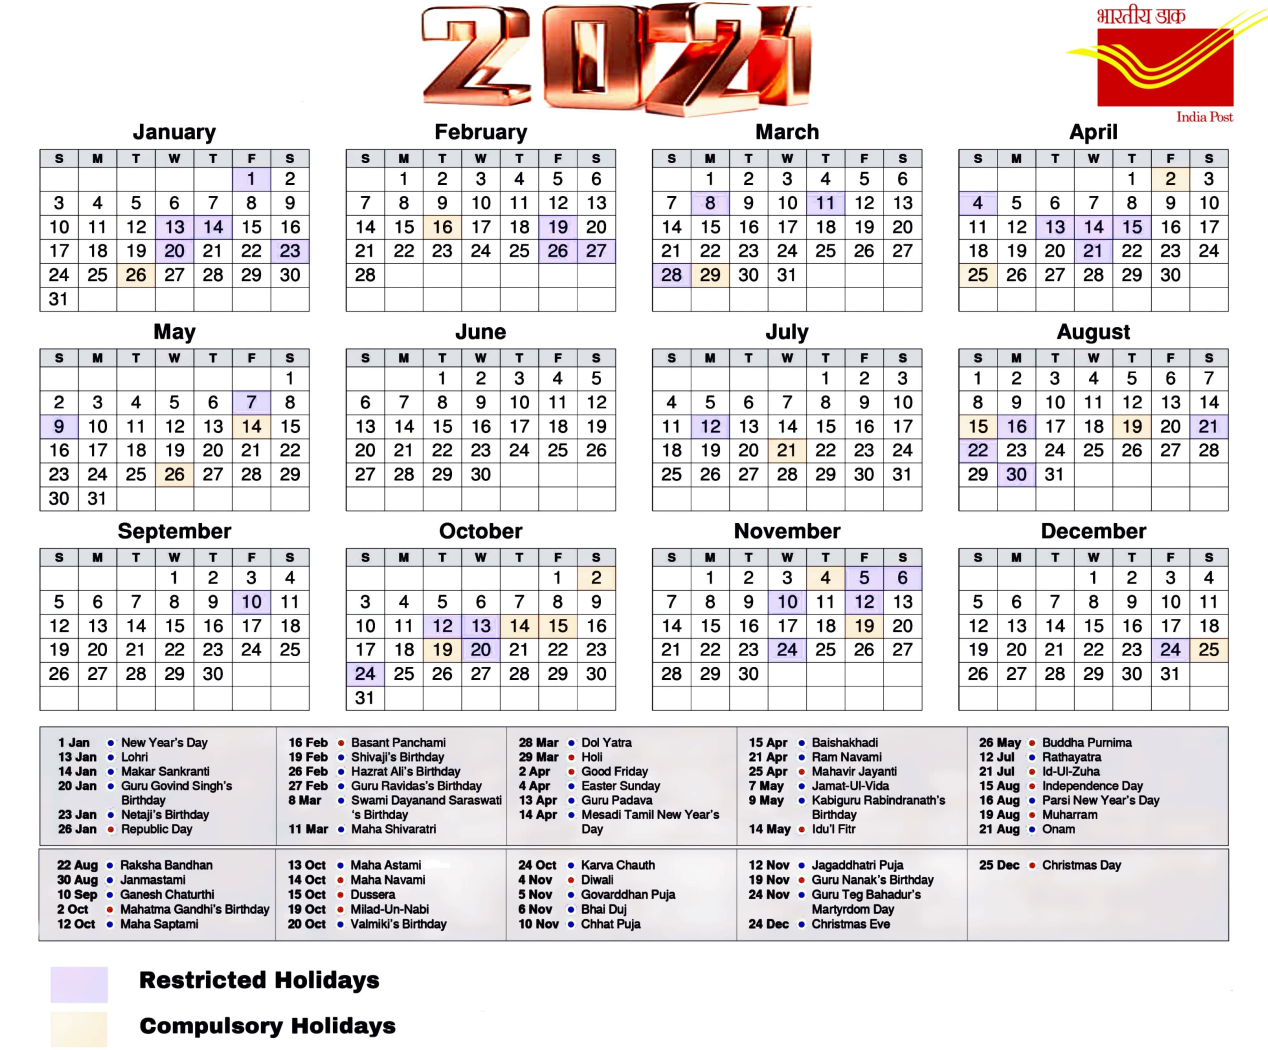 Postal Calendar 2022.Postal Calendar 2021 Update Restricted And Compulsory Holiday Po Tools